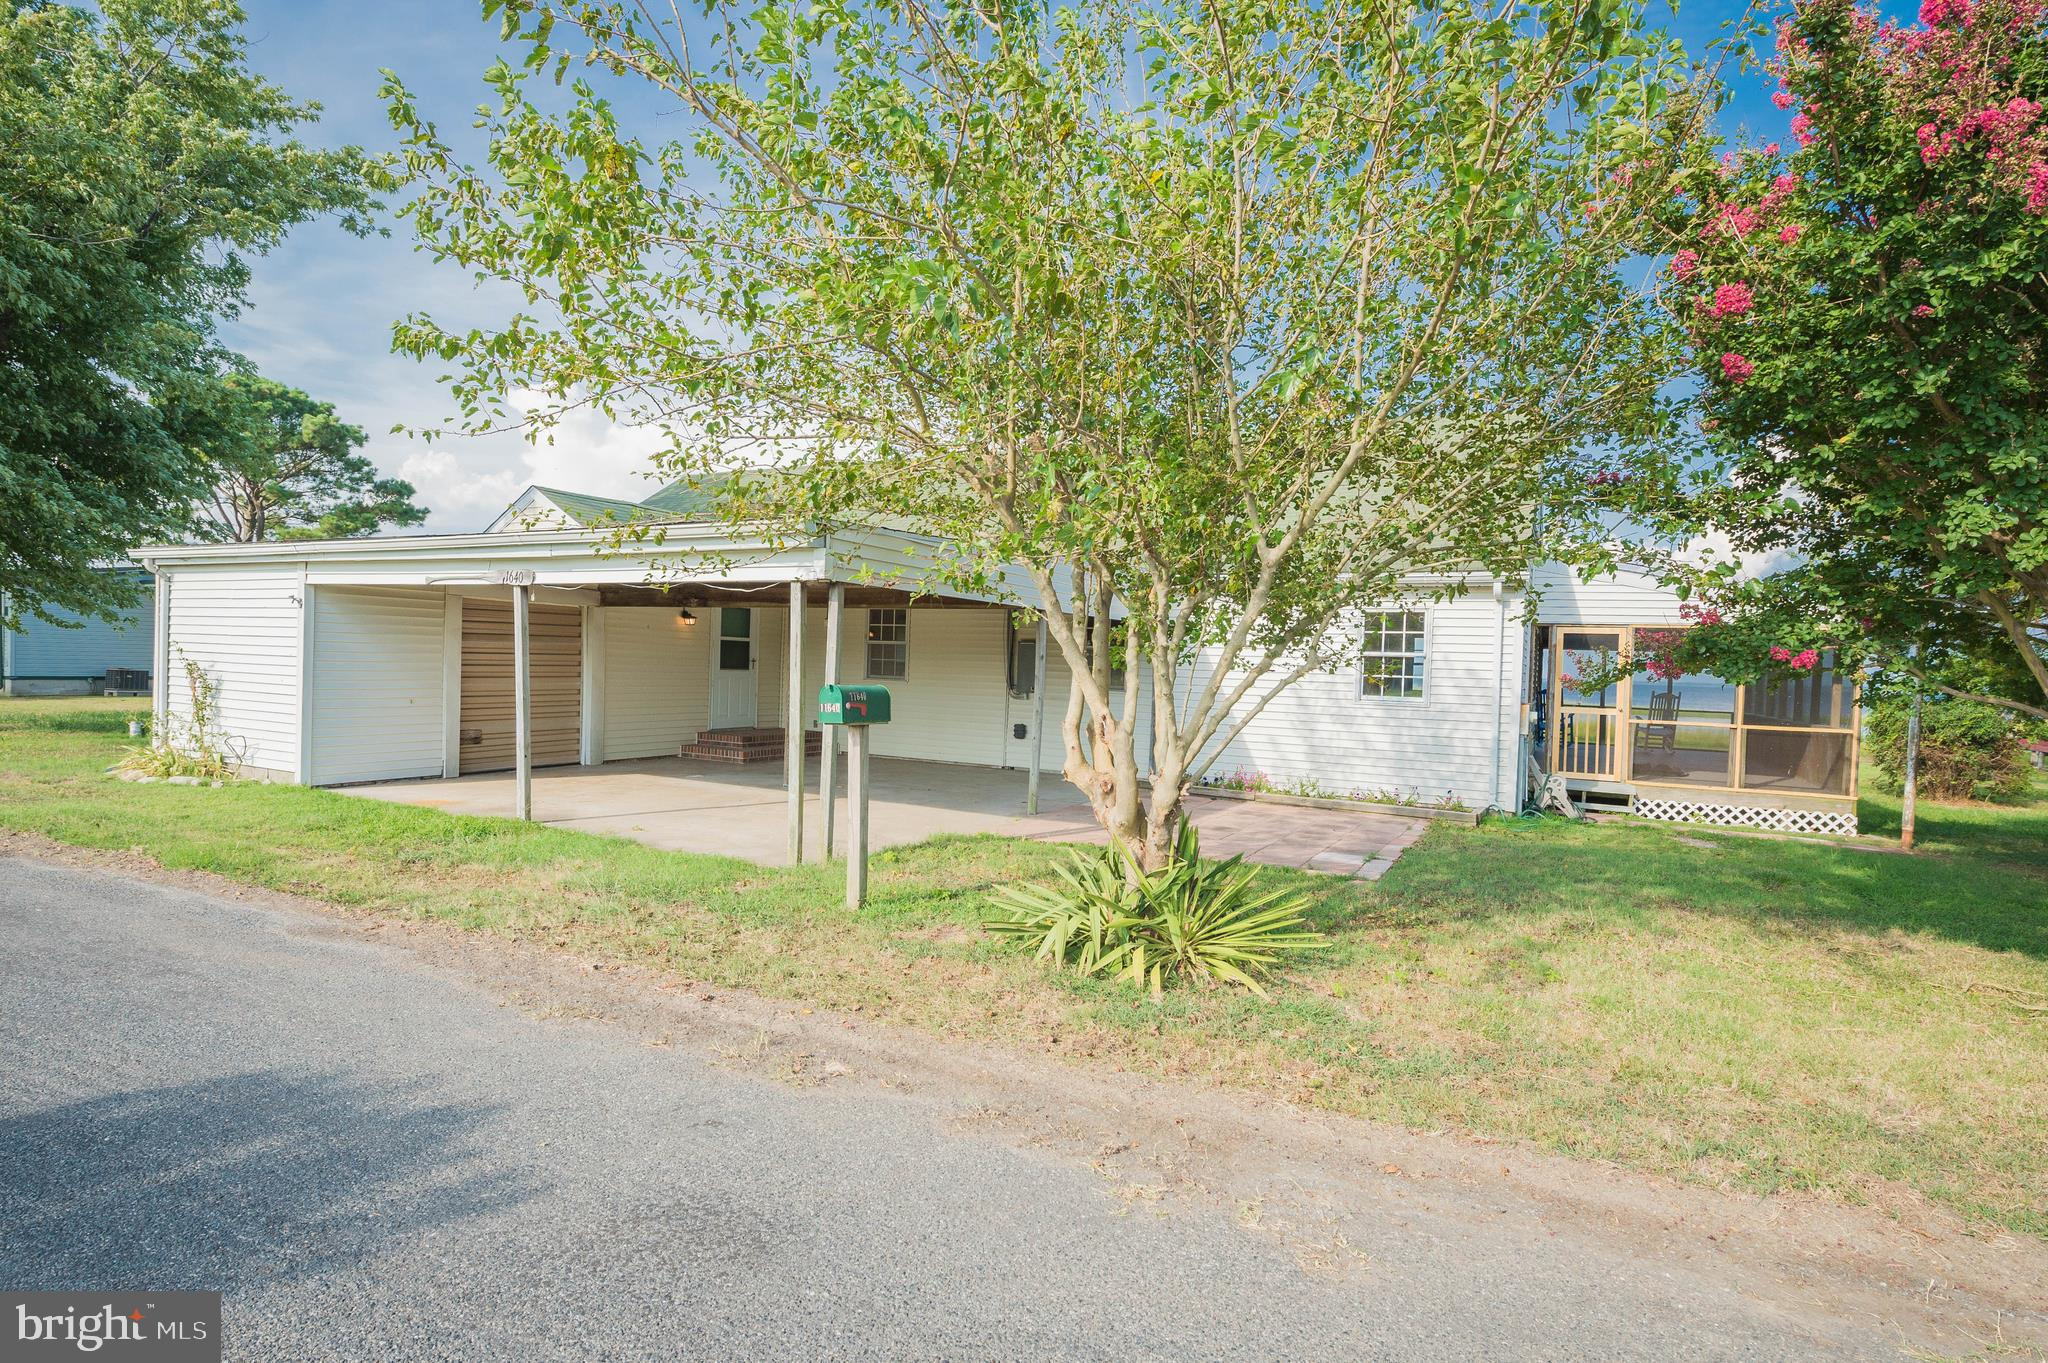 11640 LONG POINT ROAD, DEAL ISLAND, MD 21821